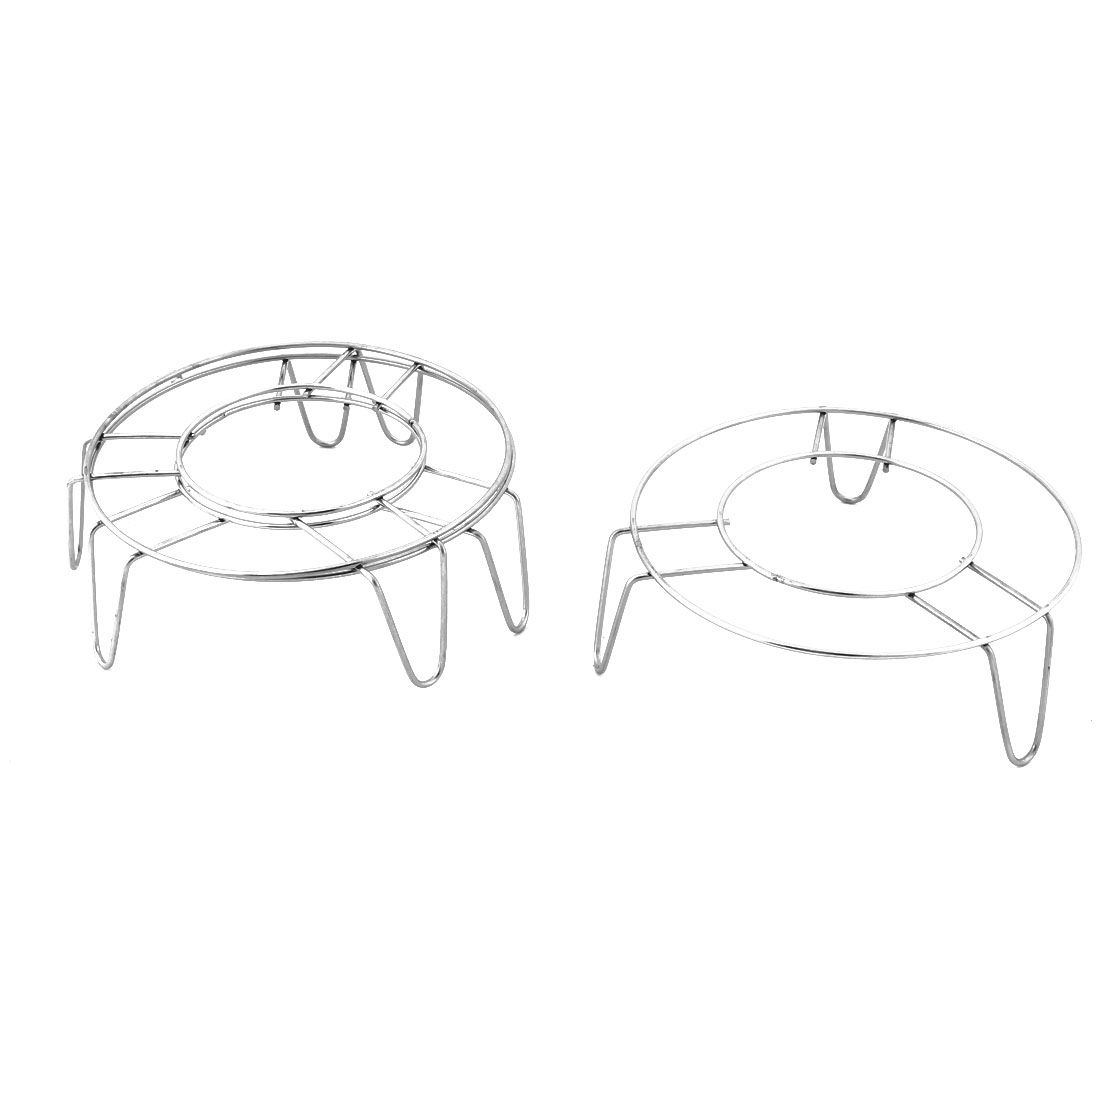 Stainless Steel Round Shape 3 Legs Design Cooking Steamer Steam Rack Stand 3 Pcs